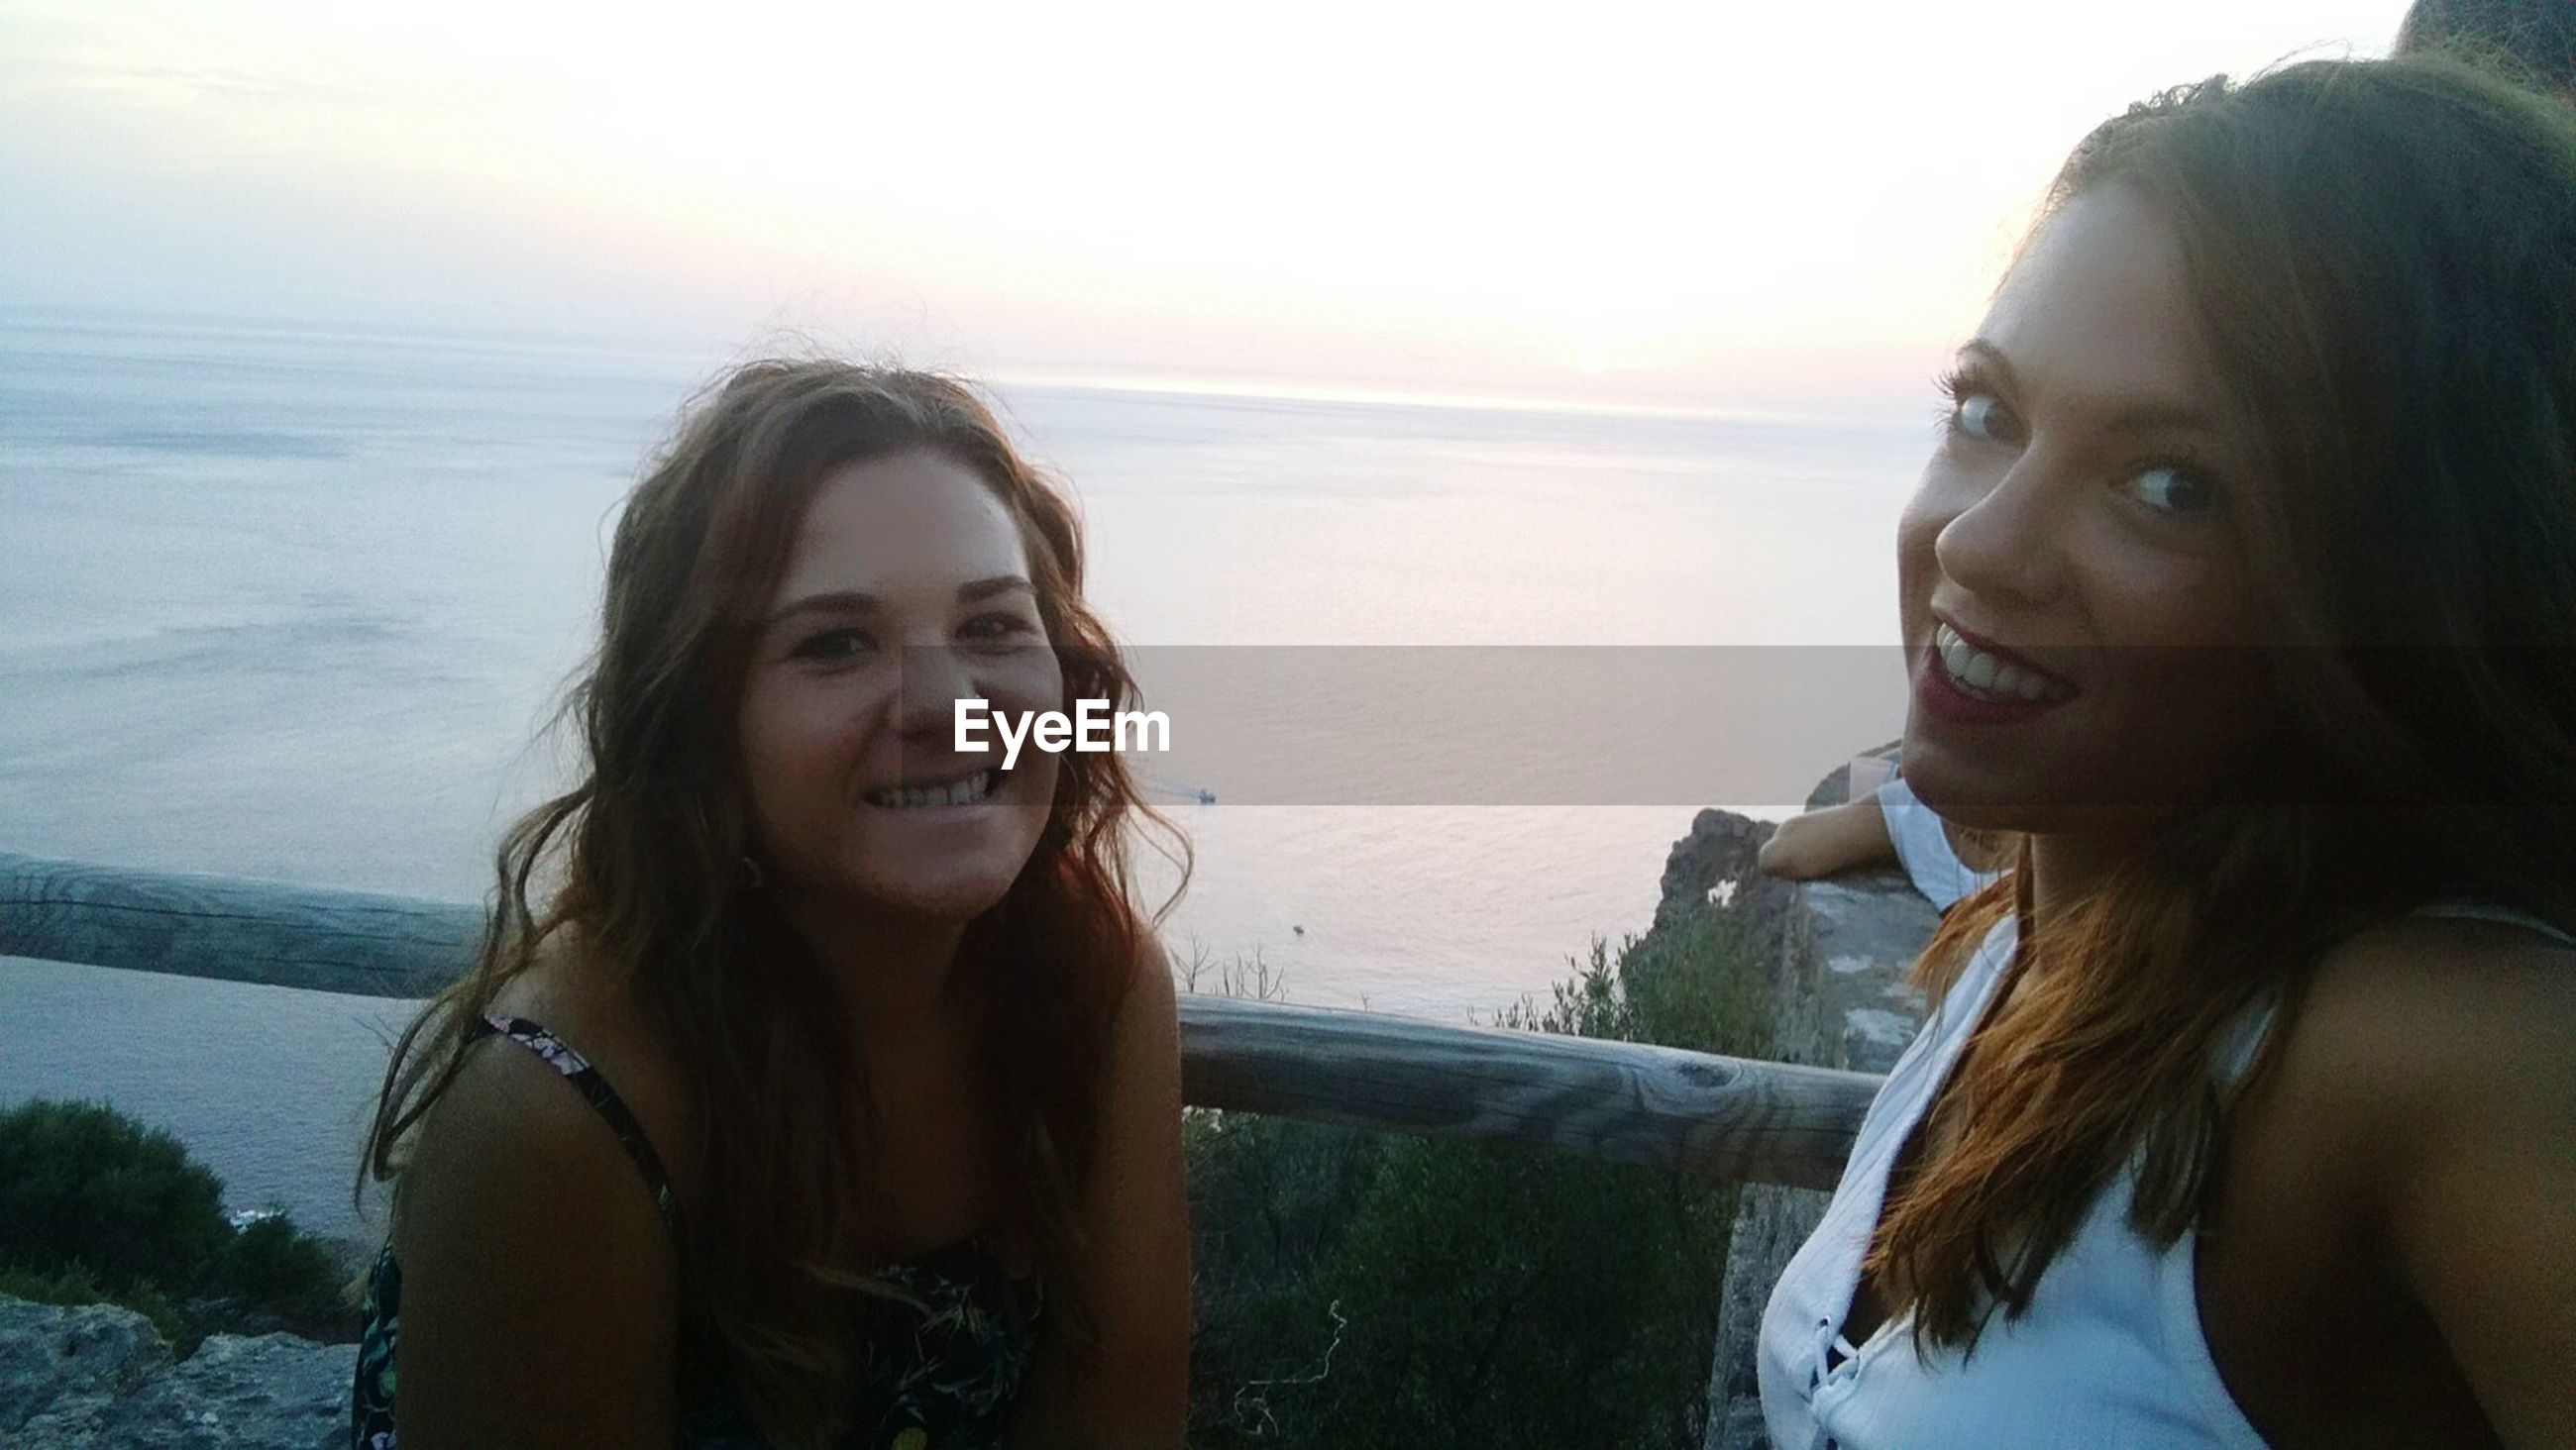 sea, water, two people, real people, horizon over water, smiling, nature, togetherness, beach, leisure activity, scenics, young women, young adult, happiness, lifestyles, long hair, outdoors, beauty in nature, love, friendship, vacations, day, sky, bonding, sunset